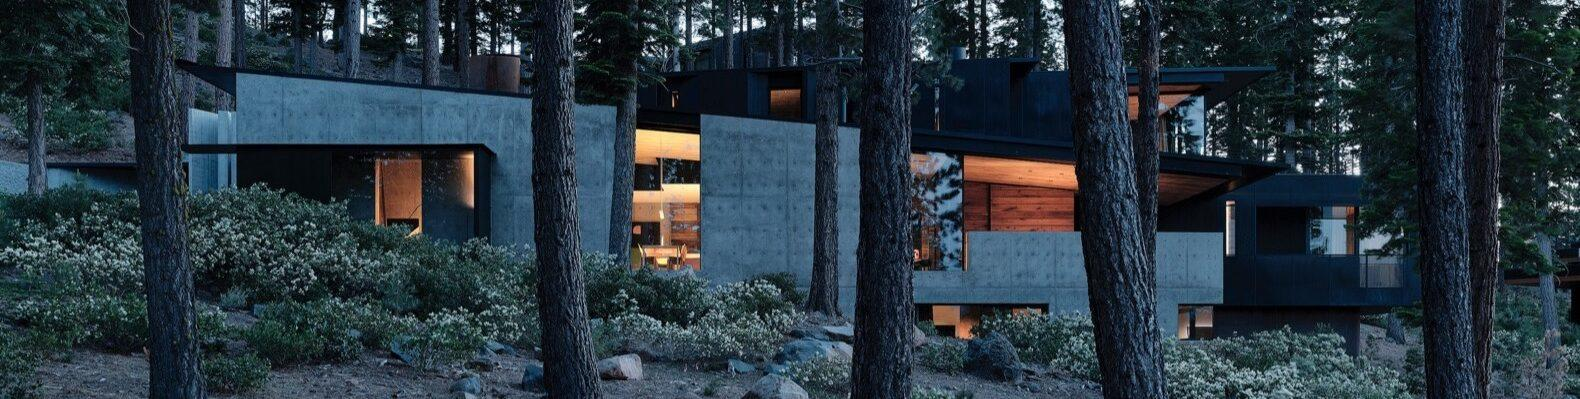 a home with a gray facade nestled within a slope in a forest. warm light shines from within the home.